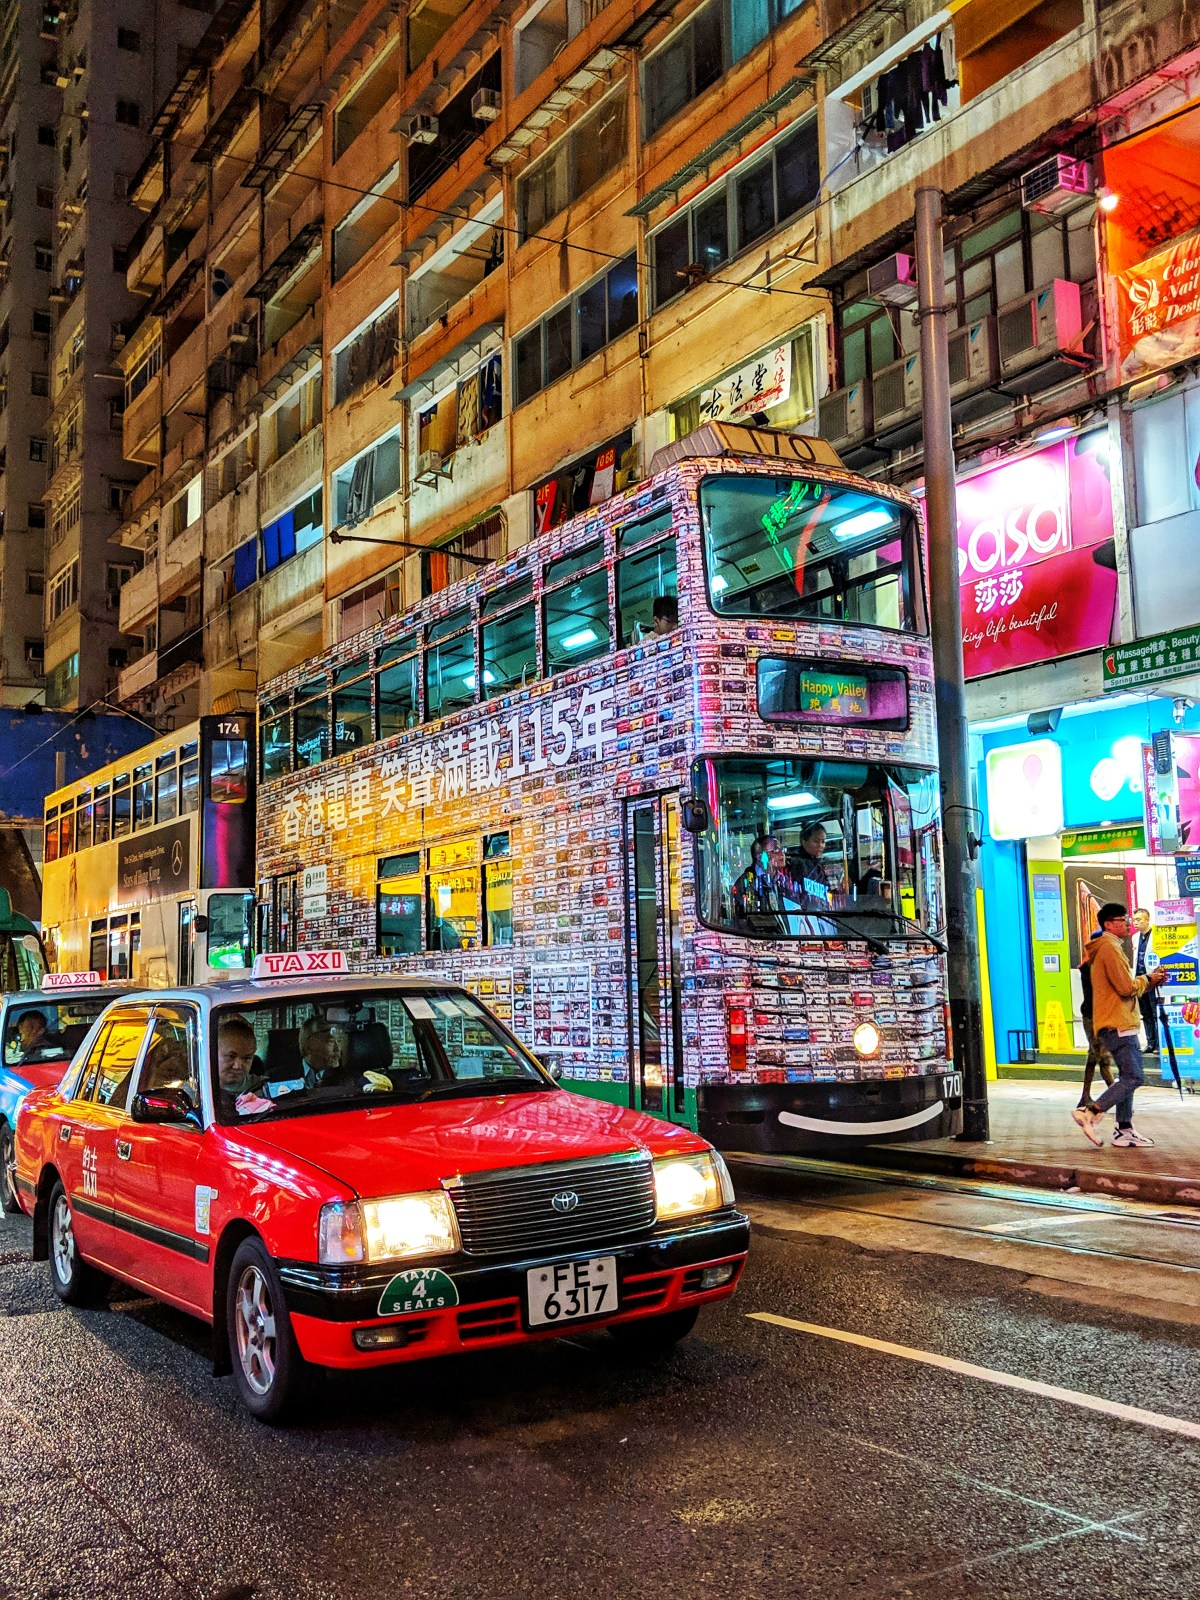 Taxi and tram in Hong Kong, China